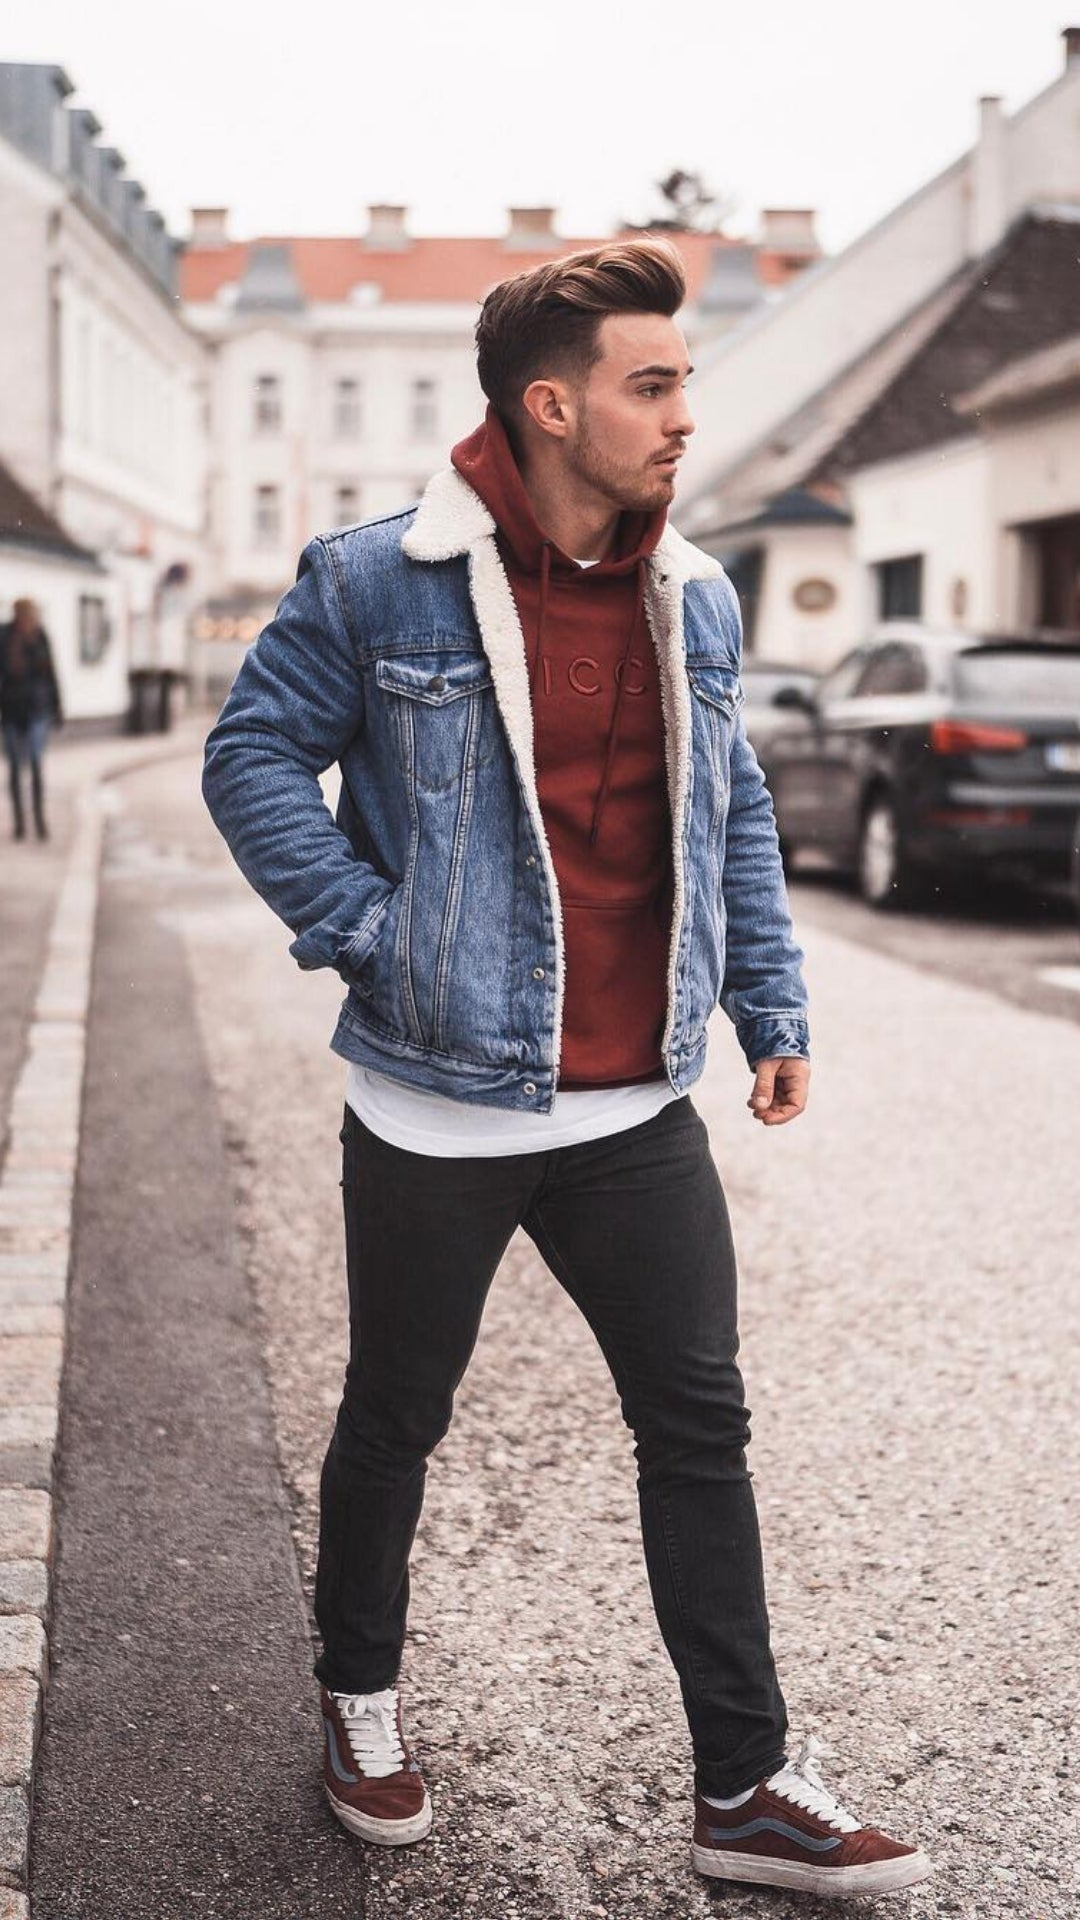 5 Edgy Street Styles Looks To Try In 2019 #streetstyle #mensfashion #casualoutfits